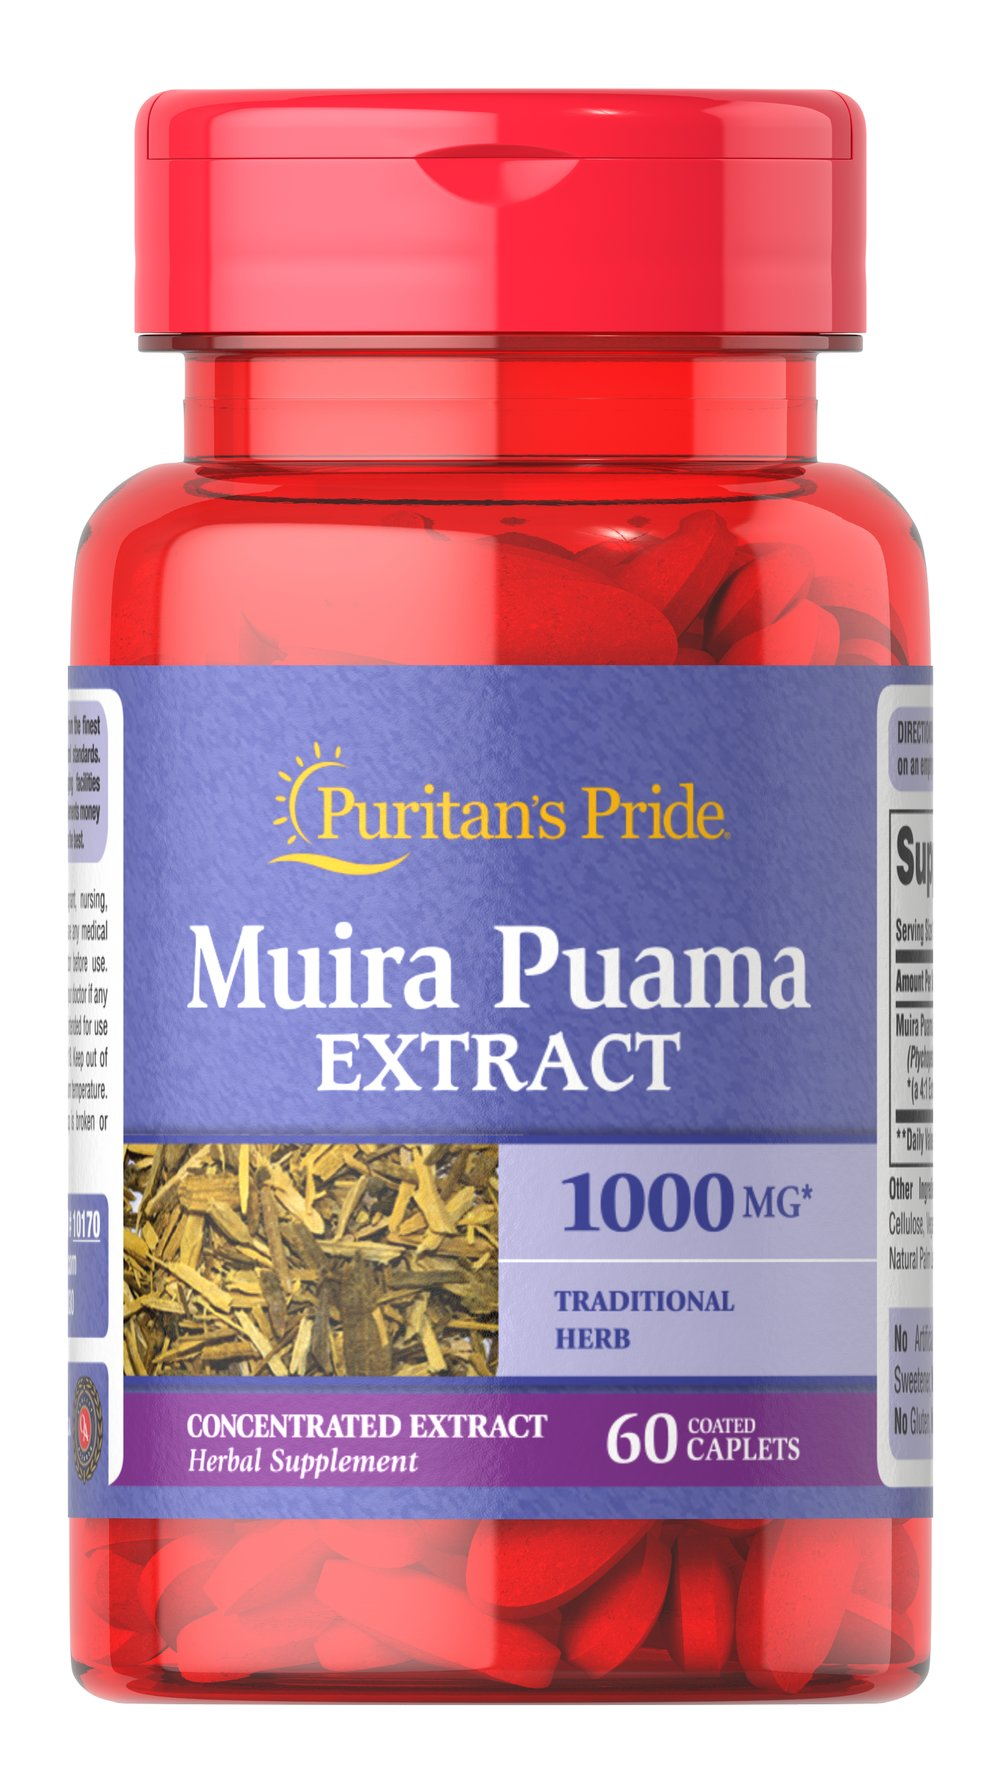 Muira Puama 1000 mg Thumbnail Alternate Bottle View